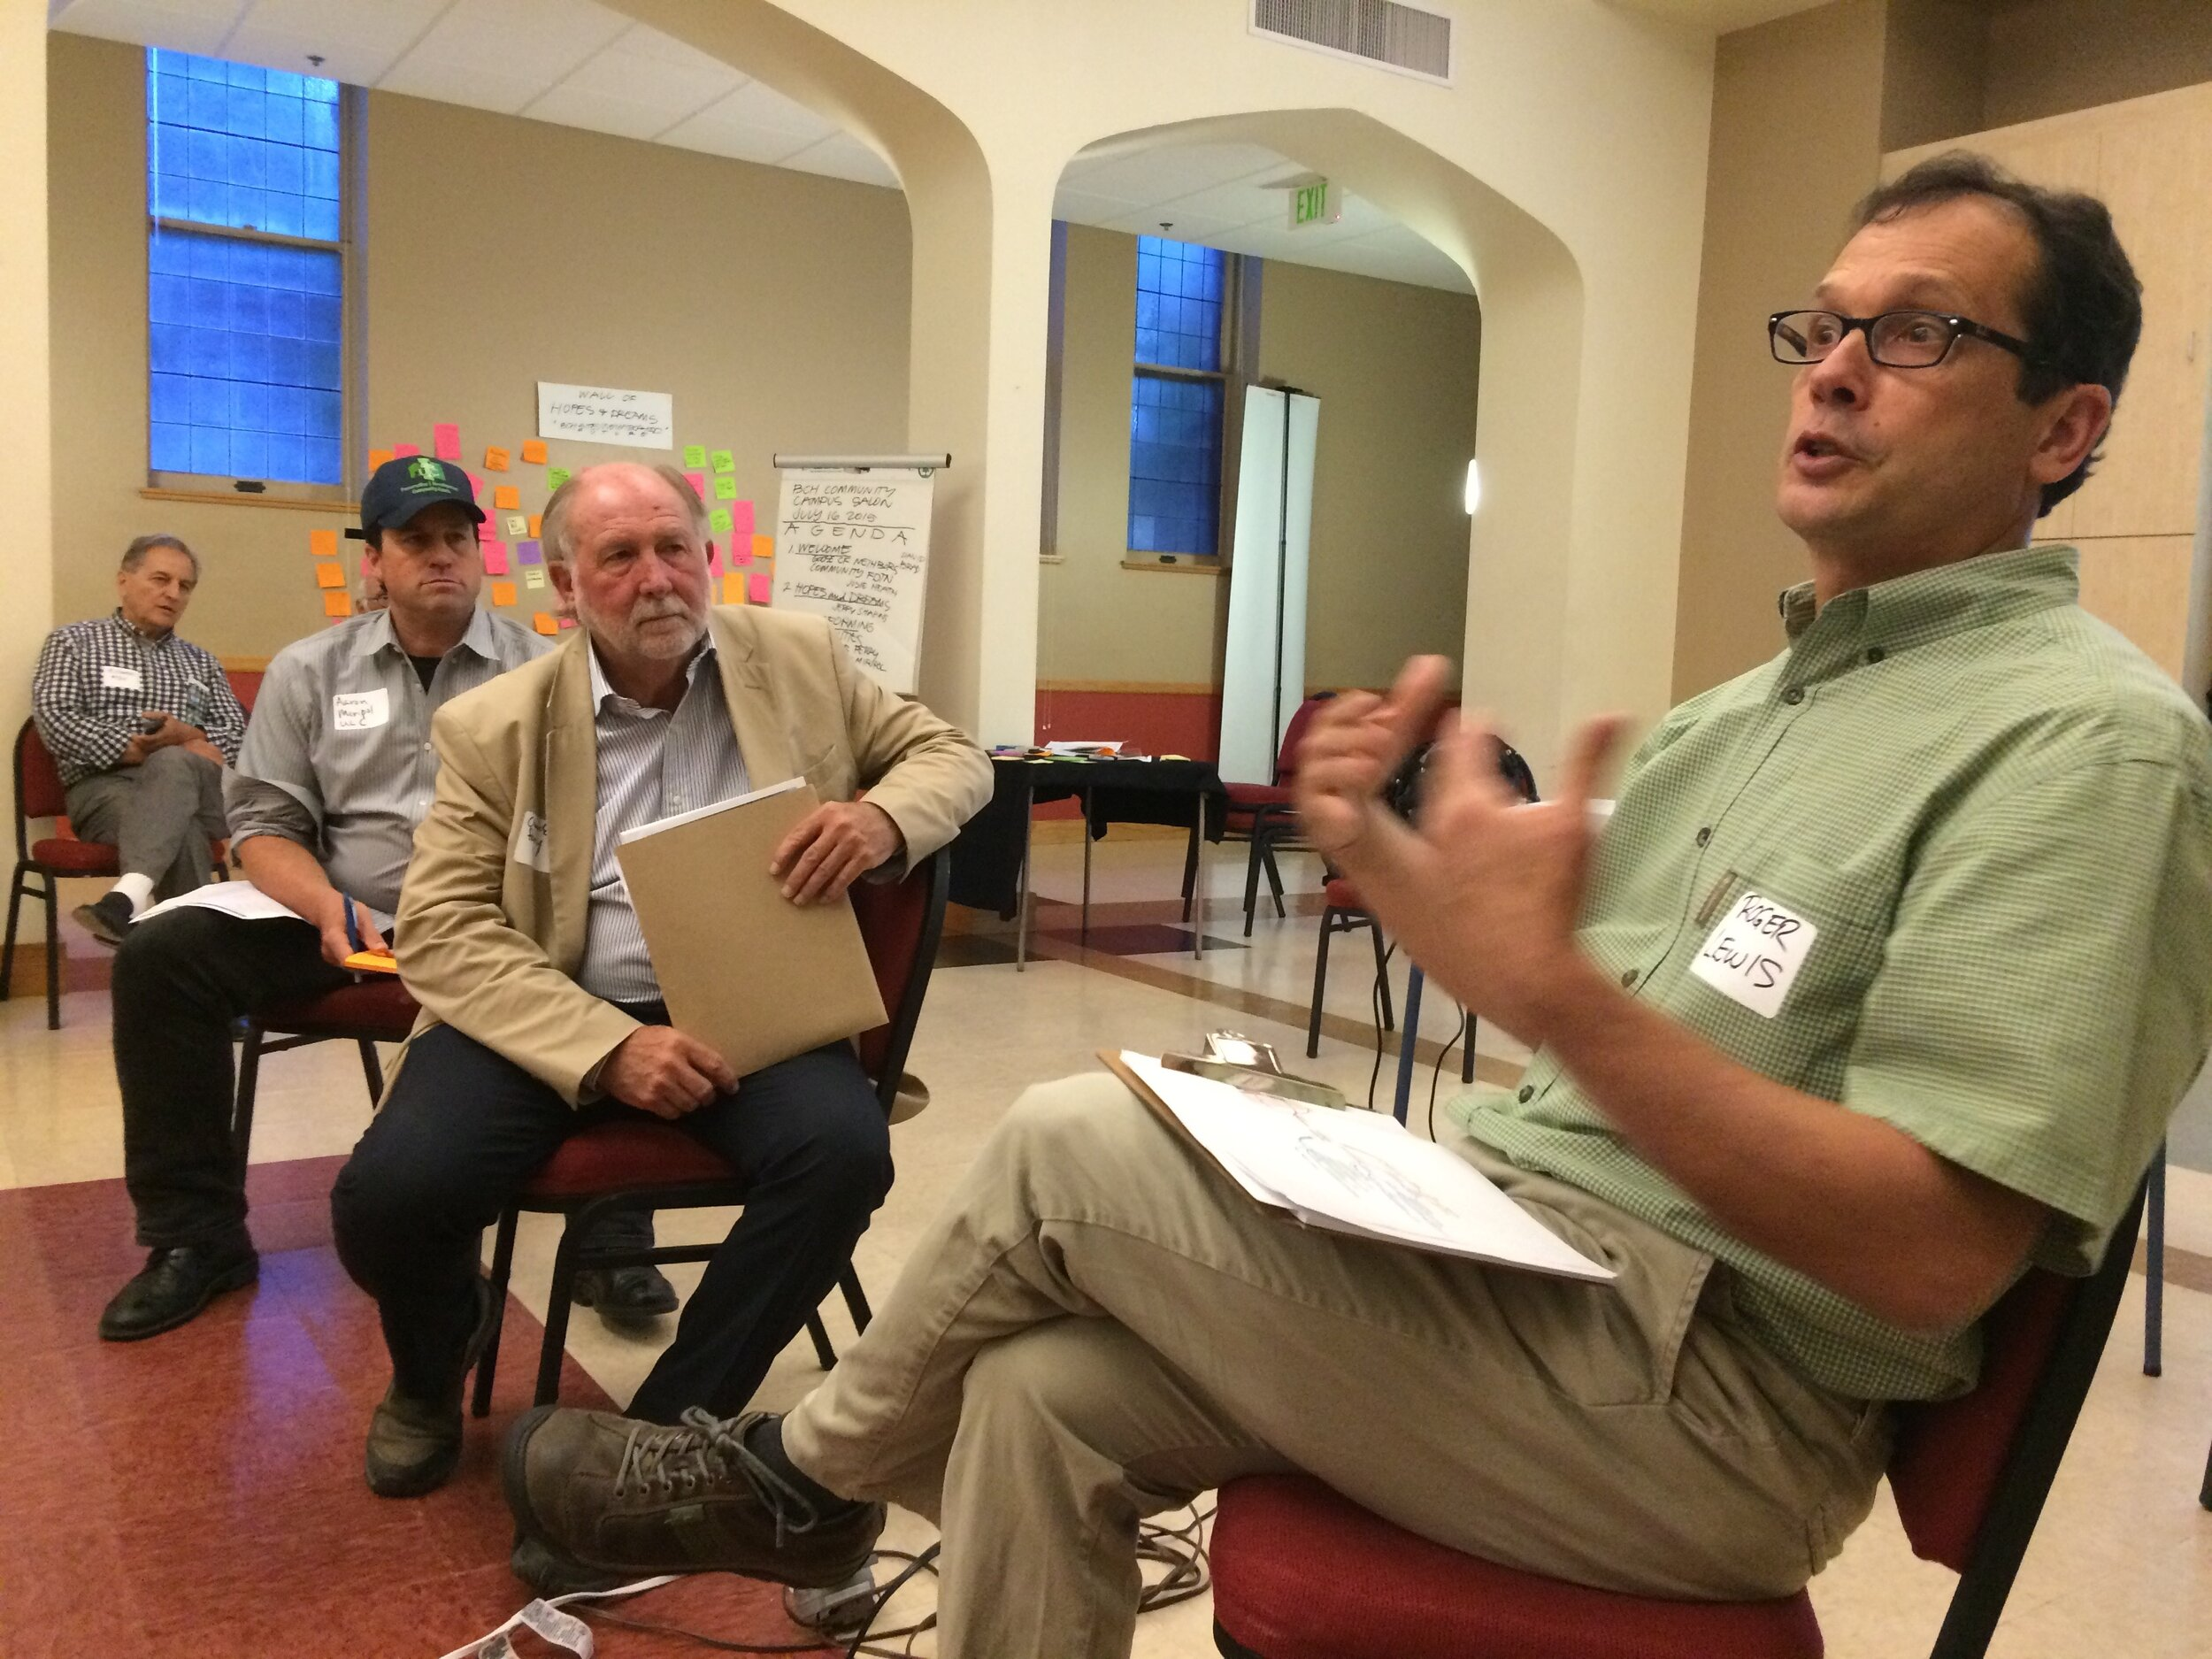 Roger Lewis  on right with developer Chuck Perry of Perry-Rose and Aaron Miripol of the Urban Land Conservancy, a Denver-based community Land Trust at 2015 Public Seminar on Transformative Development.  Roger Lewis is a key strategic advisor. He is a former employee, Thistle Community Housing and director National Community Land Trust Network.